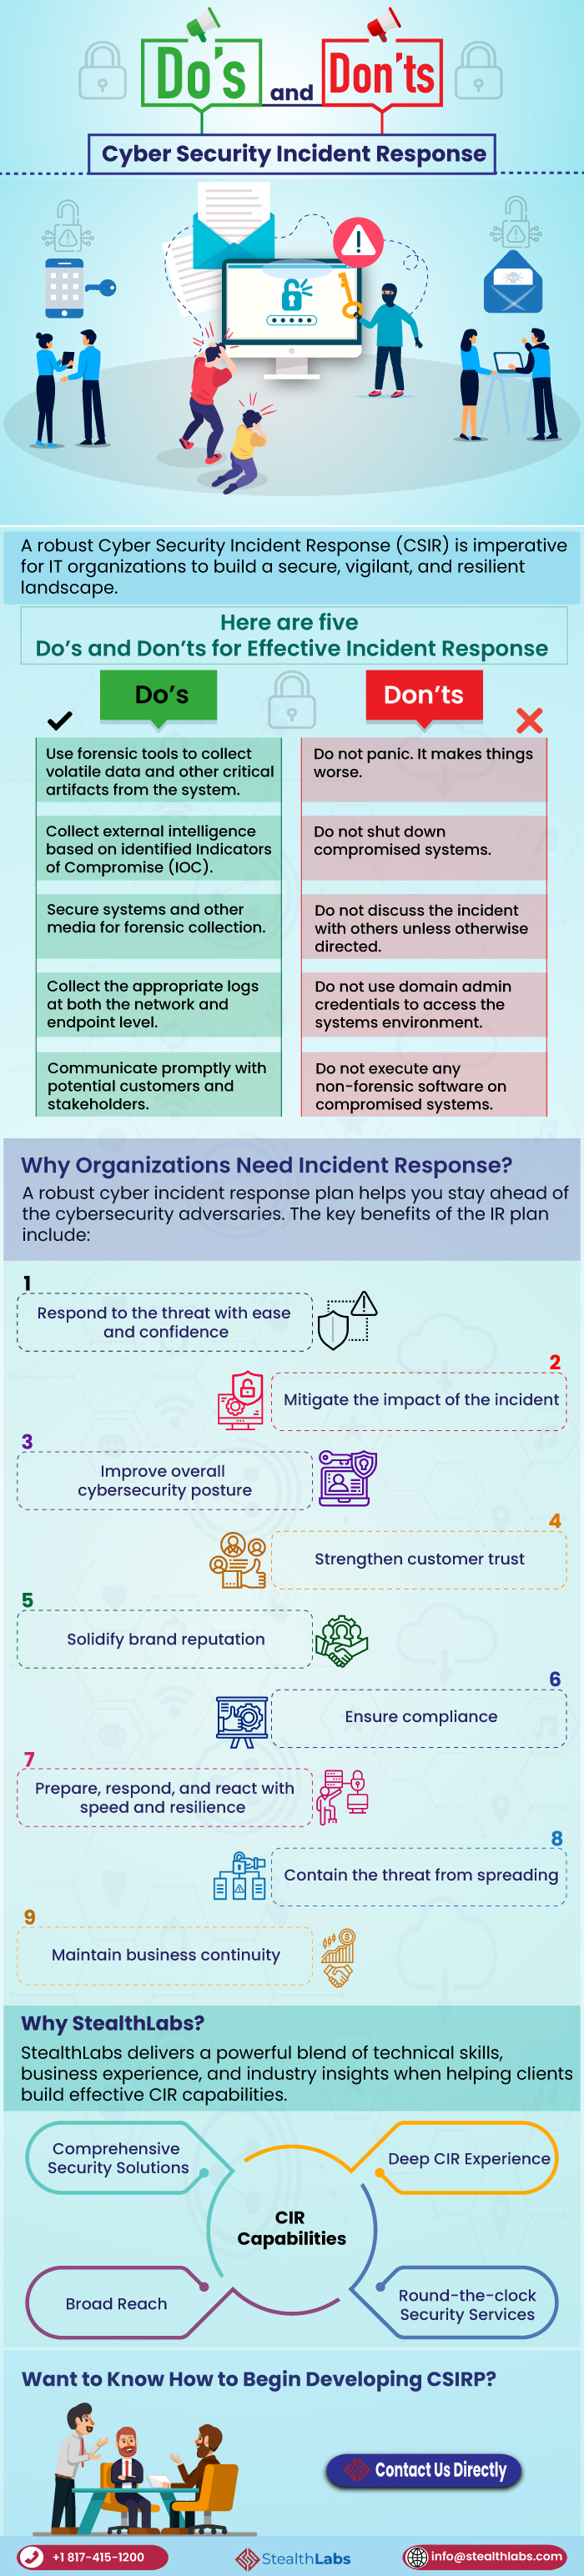 Infographic: Do's and Don'ts of Cyber Security Incident Response